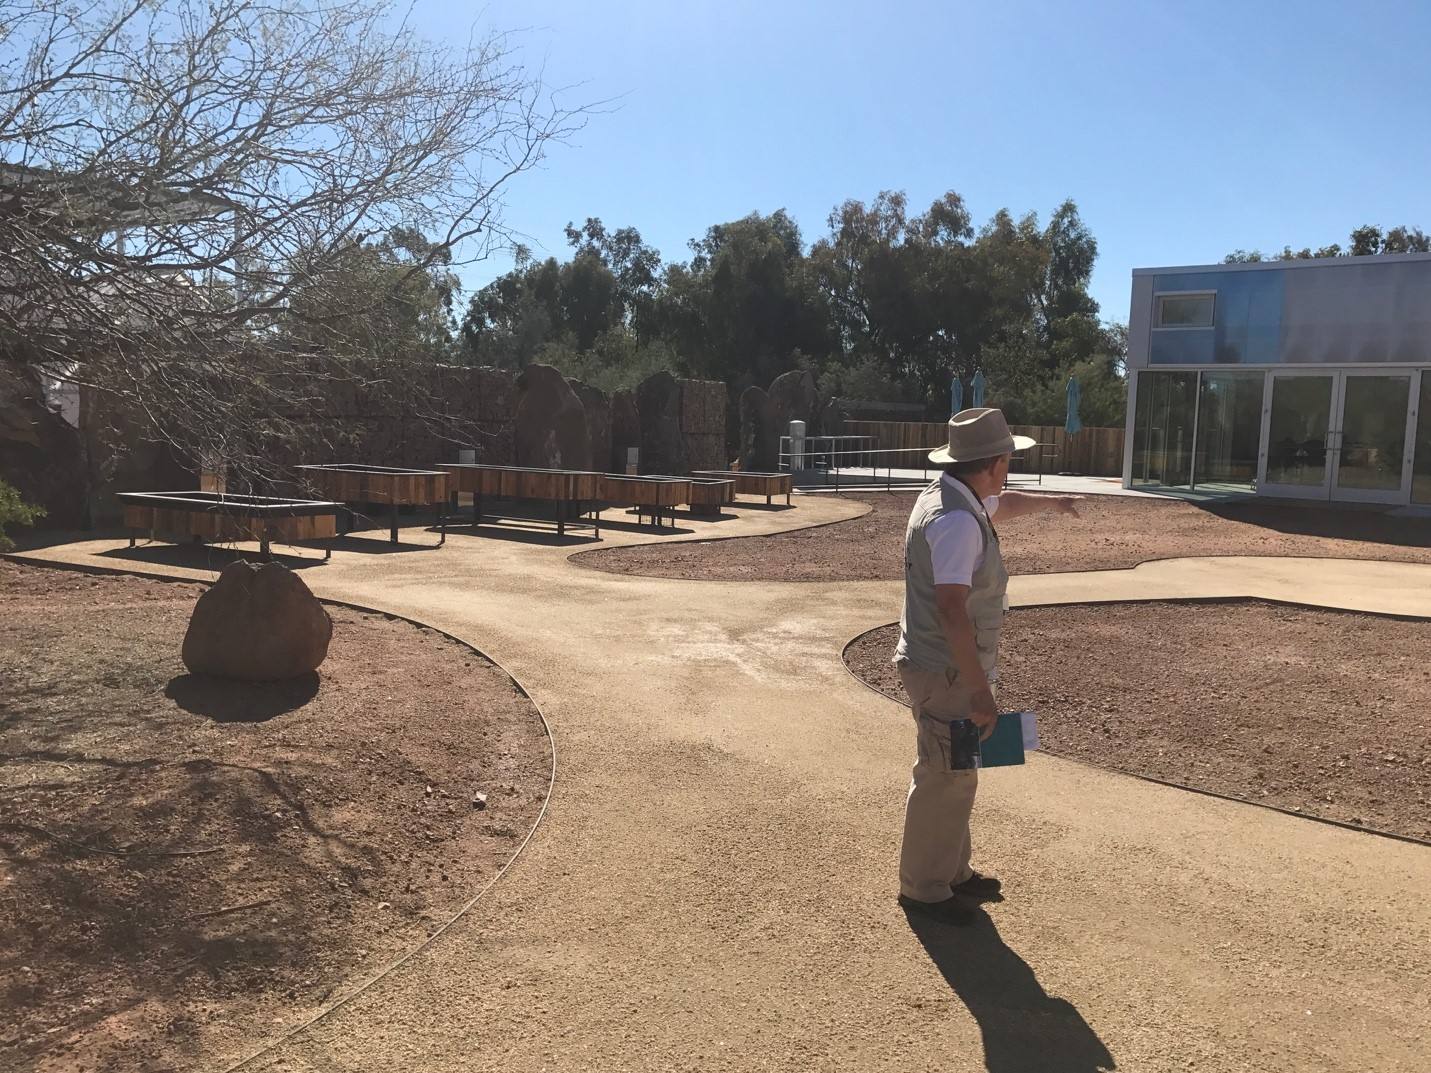 This outdoor learning center is ADA accessible and will include rotating plants used for educational purposes. Students and adults alike will be able to learn how to properly plant and lay irrigation lines, and the space will be continuously replanted.